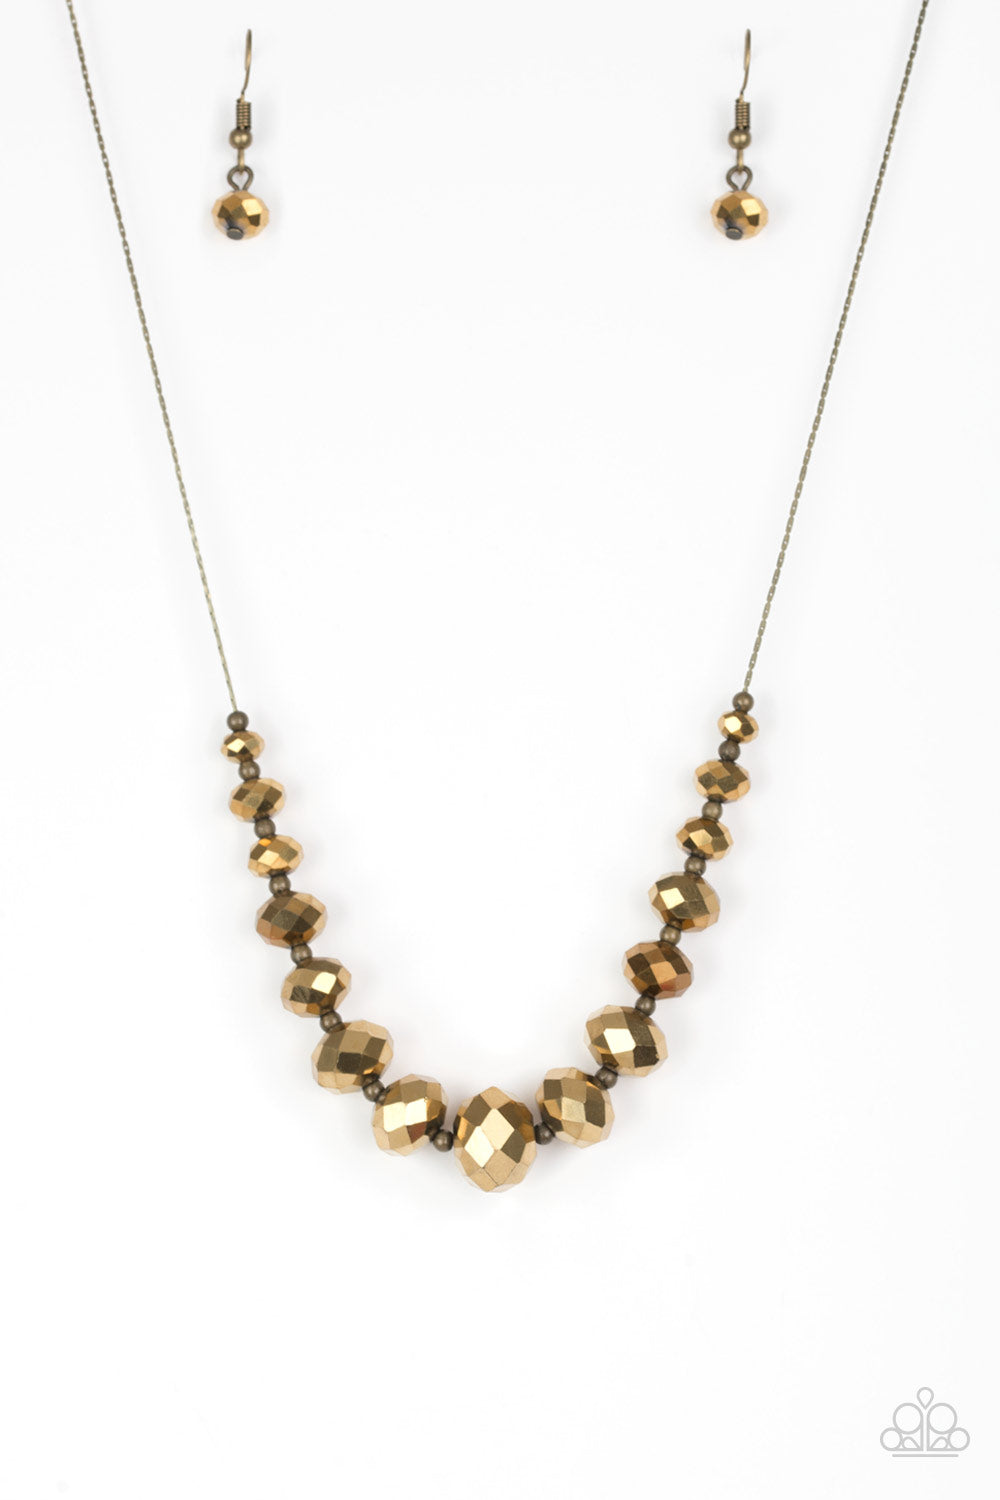 Paparazzi Crystal Carriages Brass Short Necklace